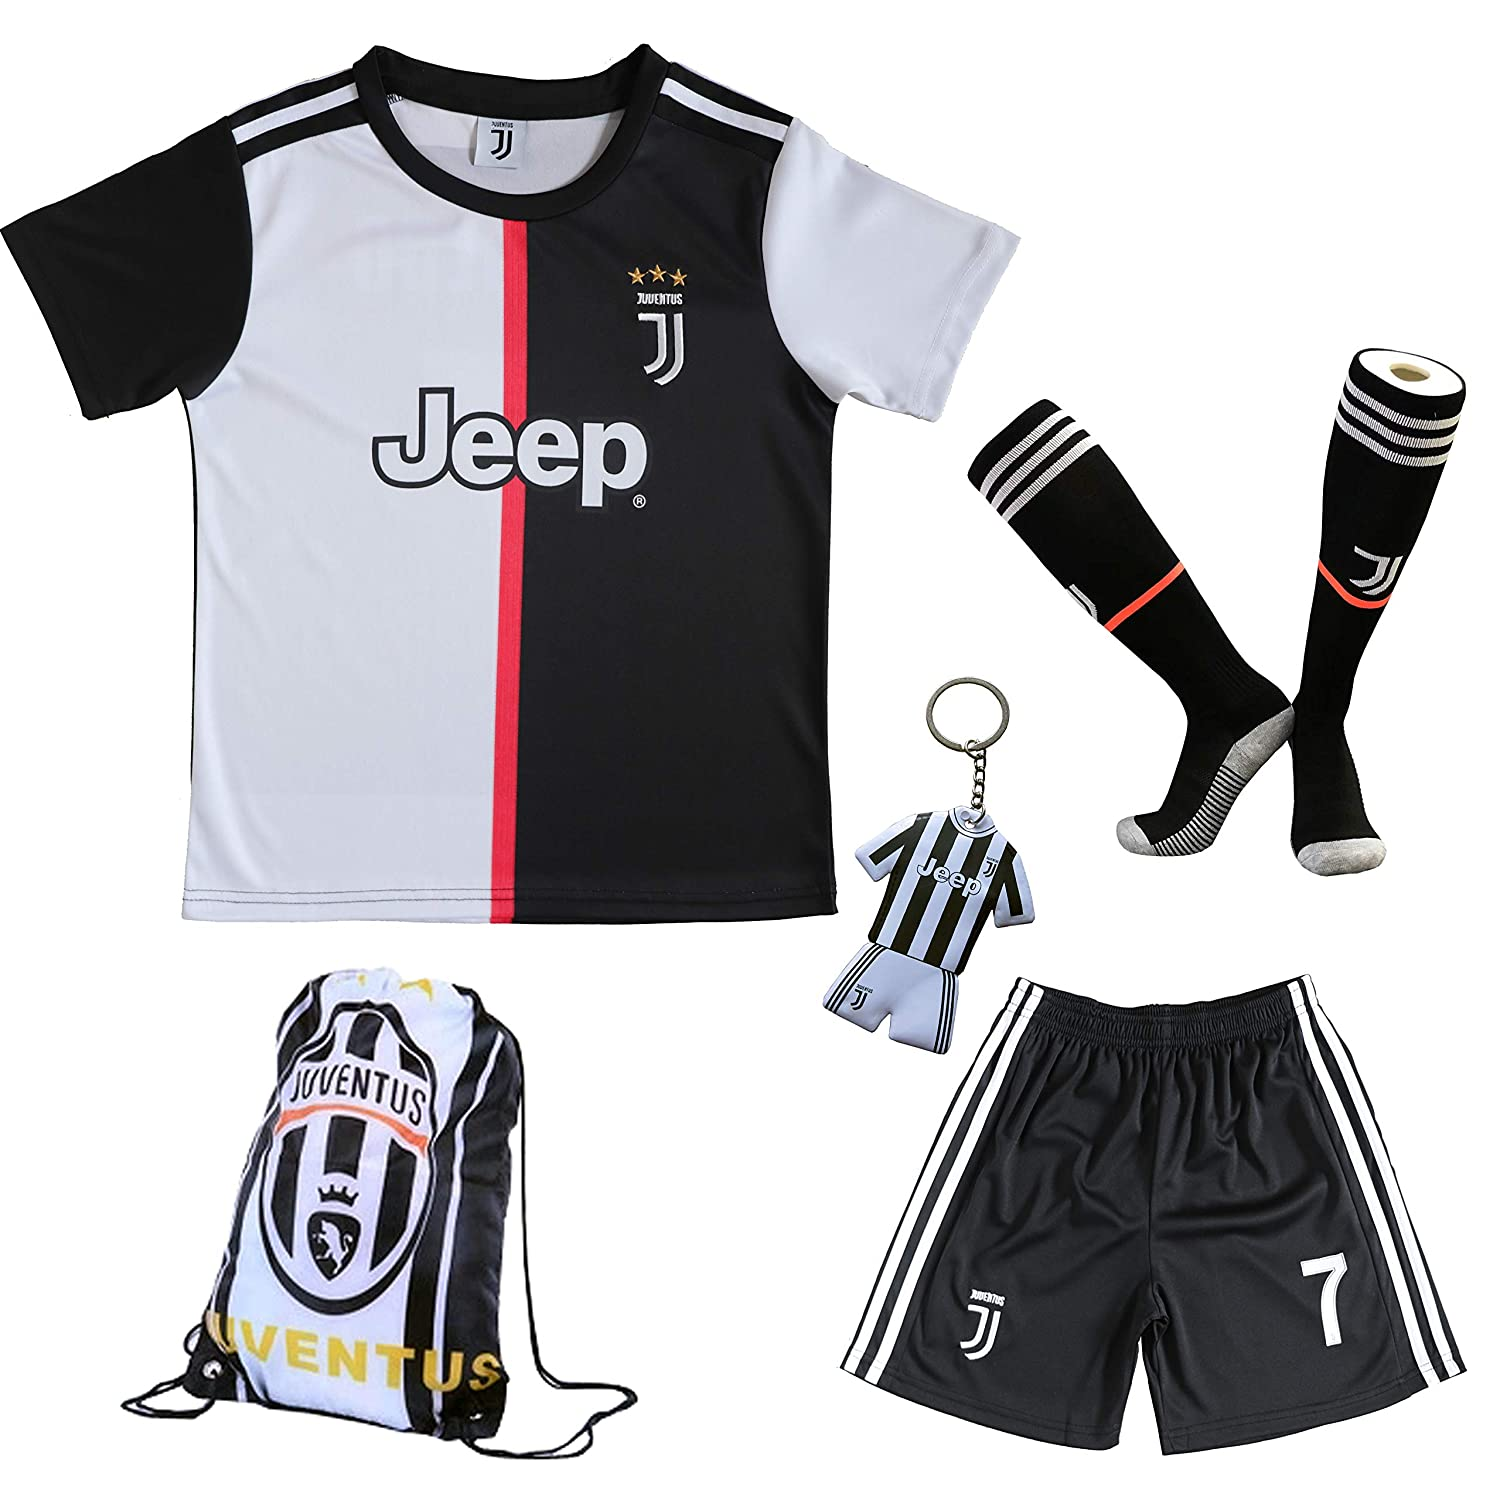 GamesDur 2019/2020 Cristiano Ronaldo #7 Home Football Soccer Kids Jersey & Short & Sock & Soccer Bag Youth Sizes